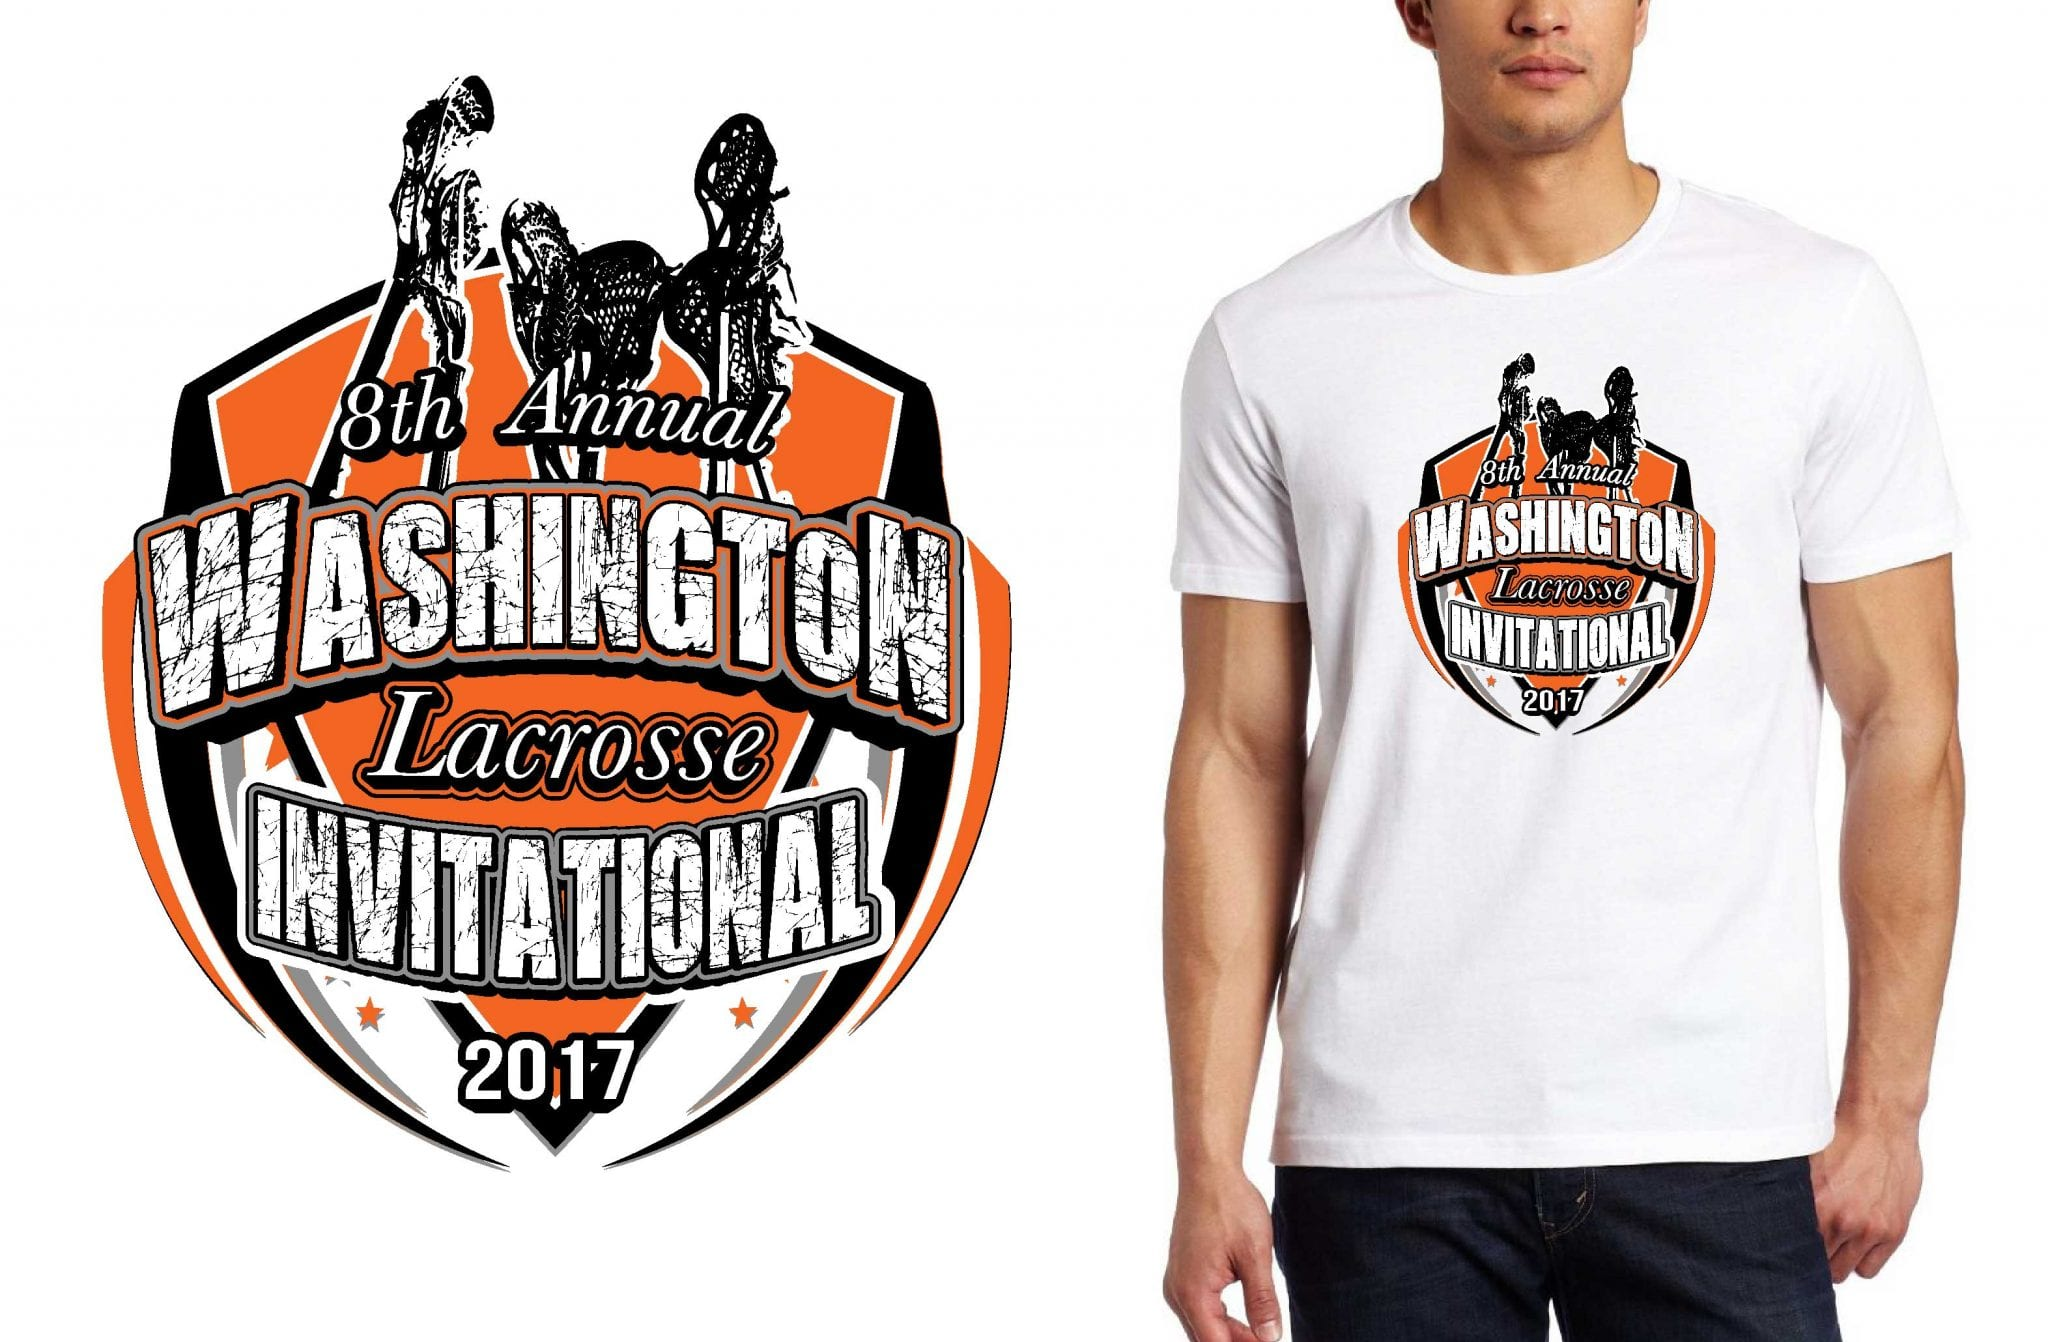 LACROSSE LOGO for 8th-Annual-Washington-Lacrosse-Invitational T-SHIRT UrArtStudio